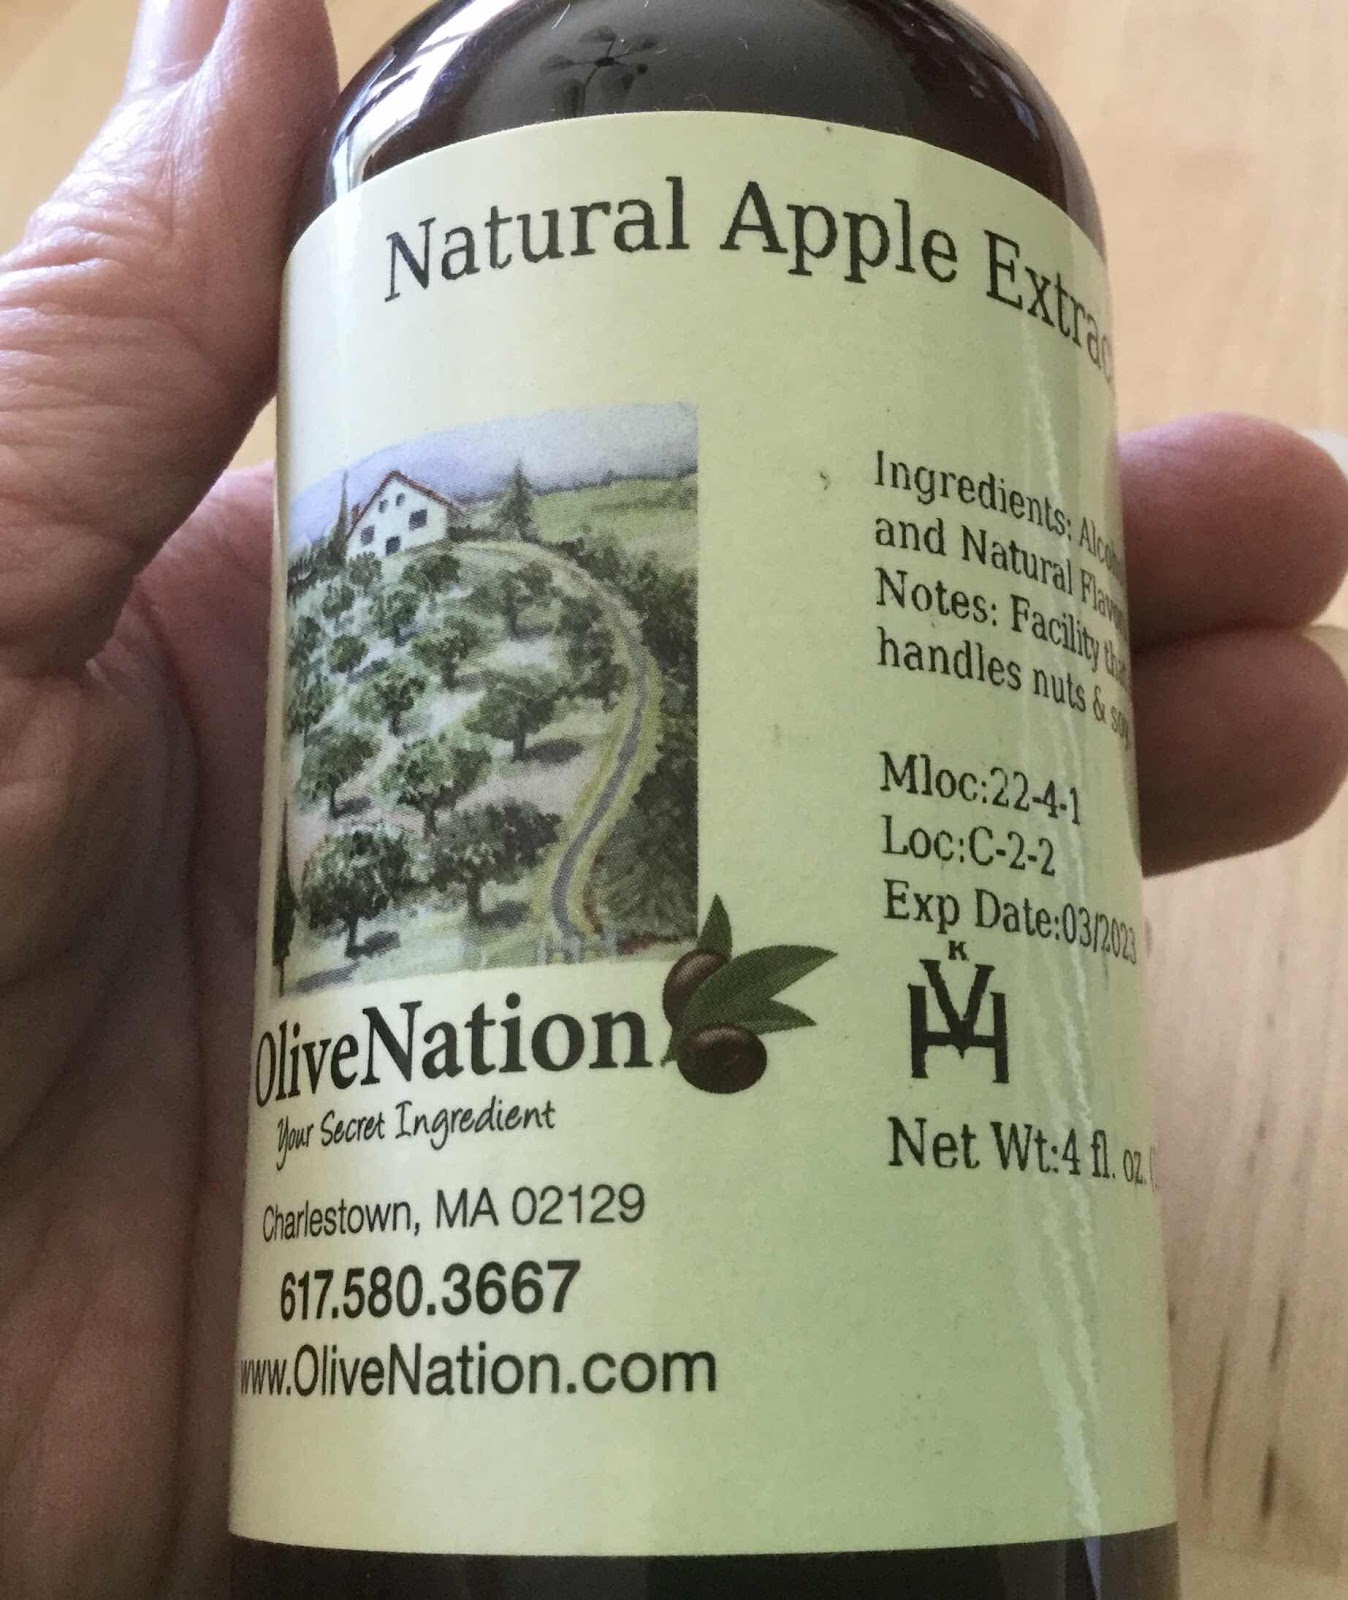 OliveNation Apple Extract